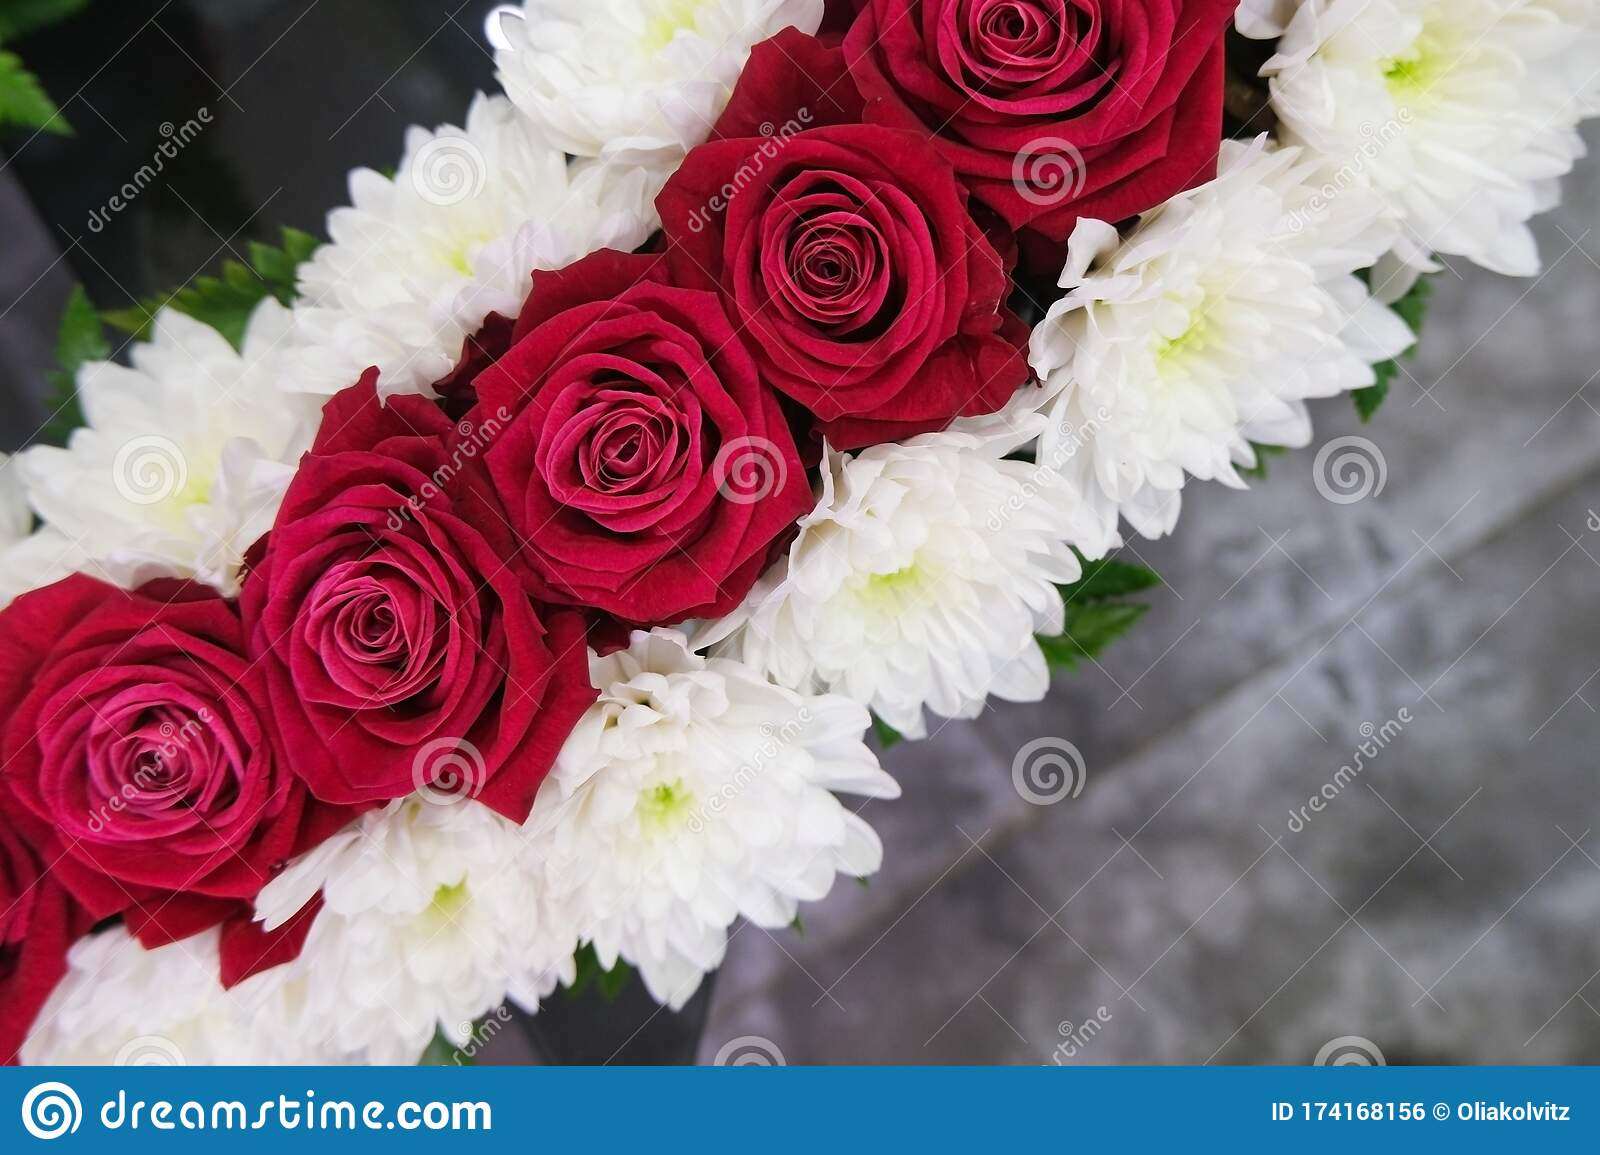 Roses And Chrysanthemum Flowers Arrangement White And Red Roses Small Cute Flowers Stock Photo Image Of Concept Colorful 174168156